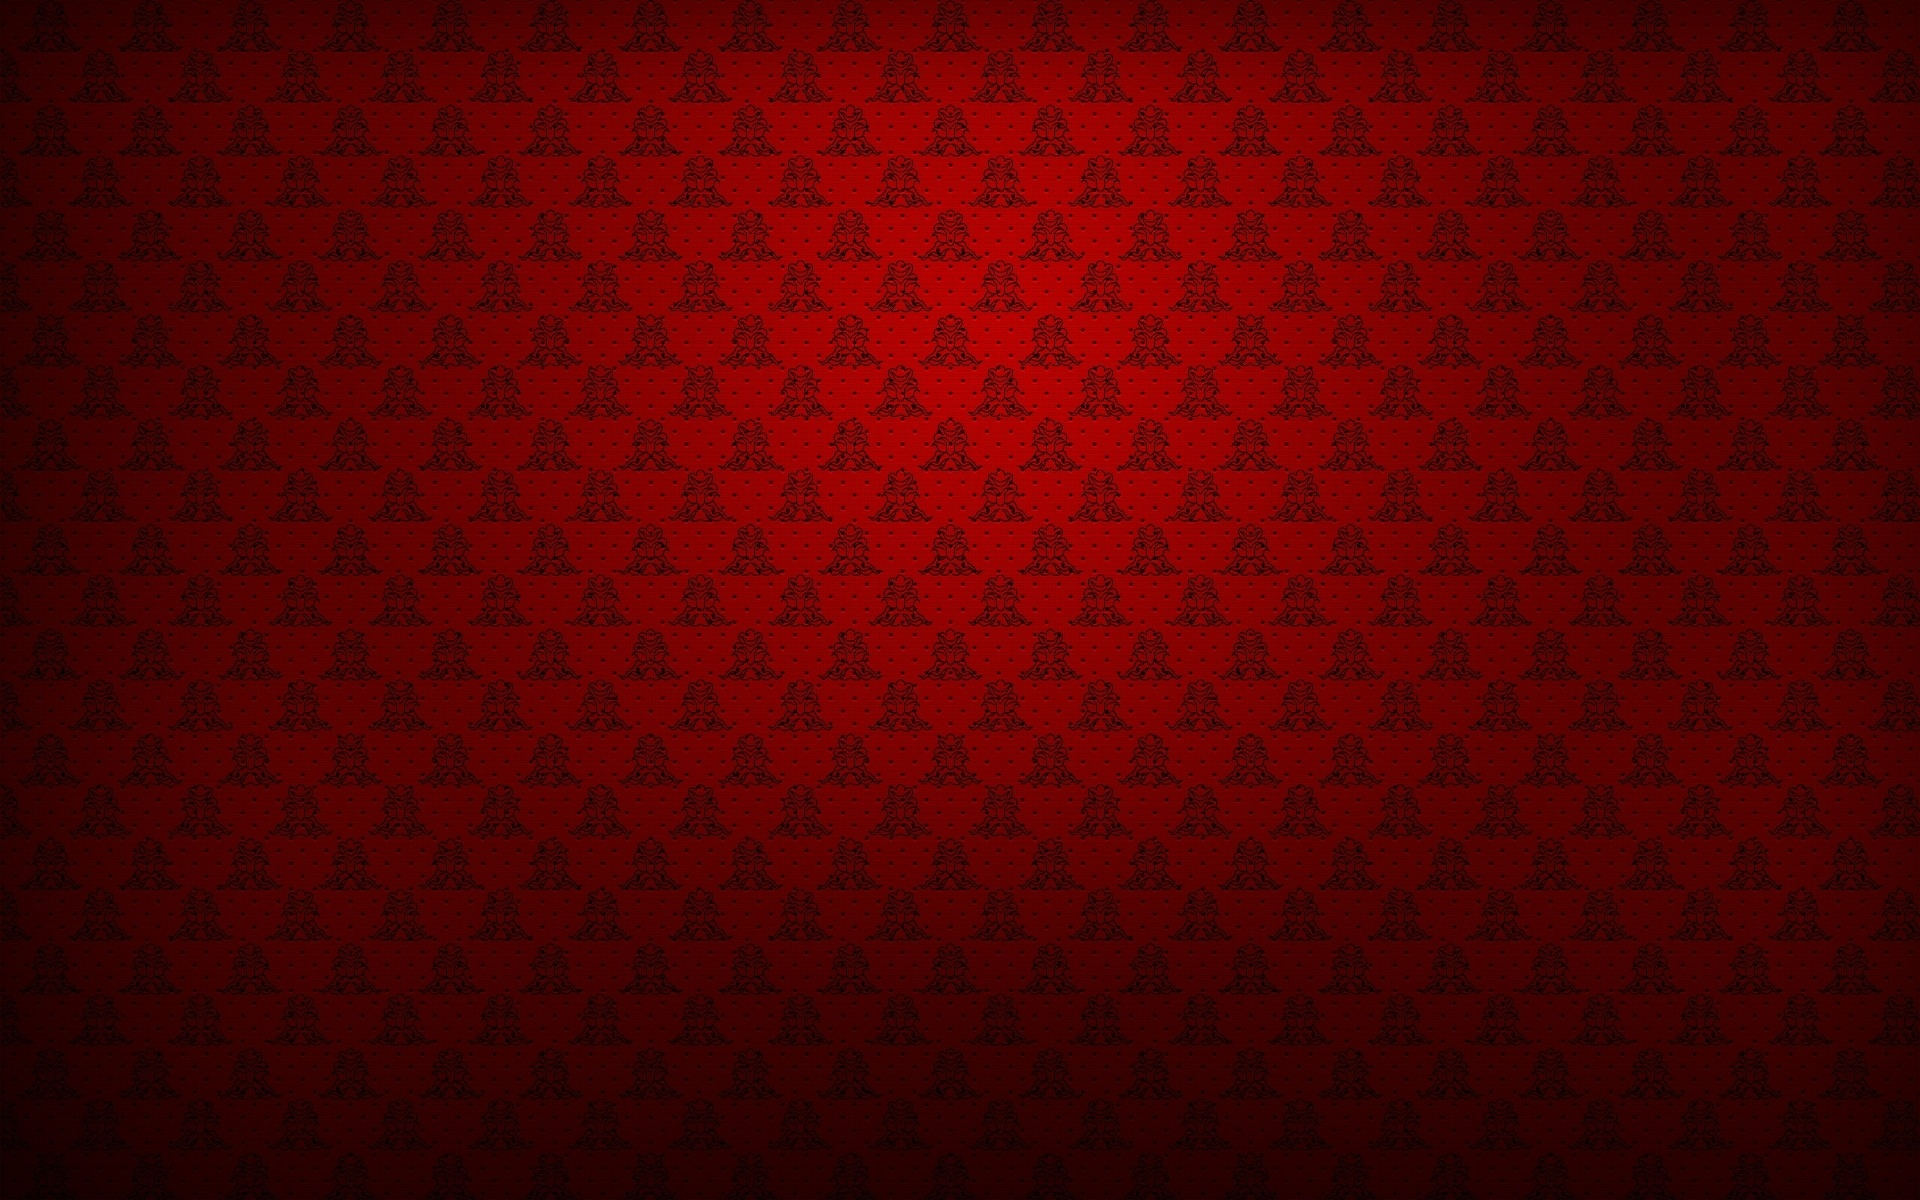 Best-new-background-patterns-Red-Patterns-1920-Red-Patterns-Background-Imageif-thr-wallpaper-wpc9002840